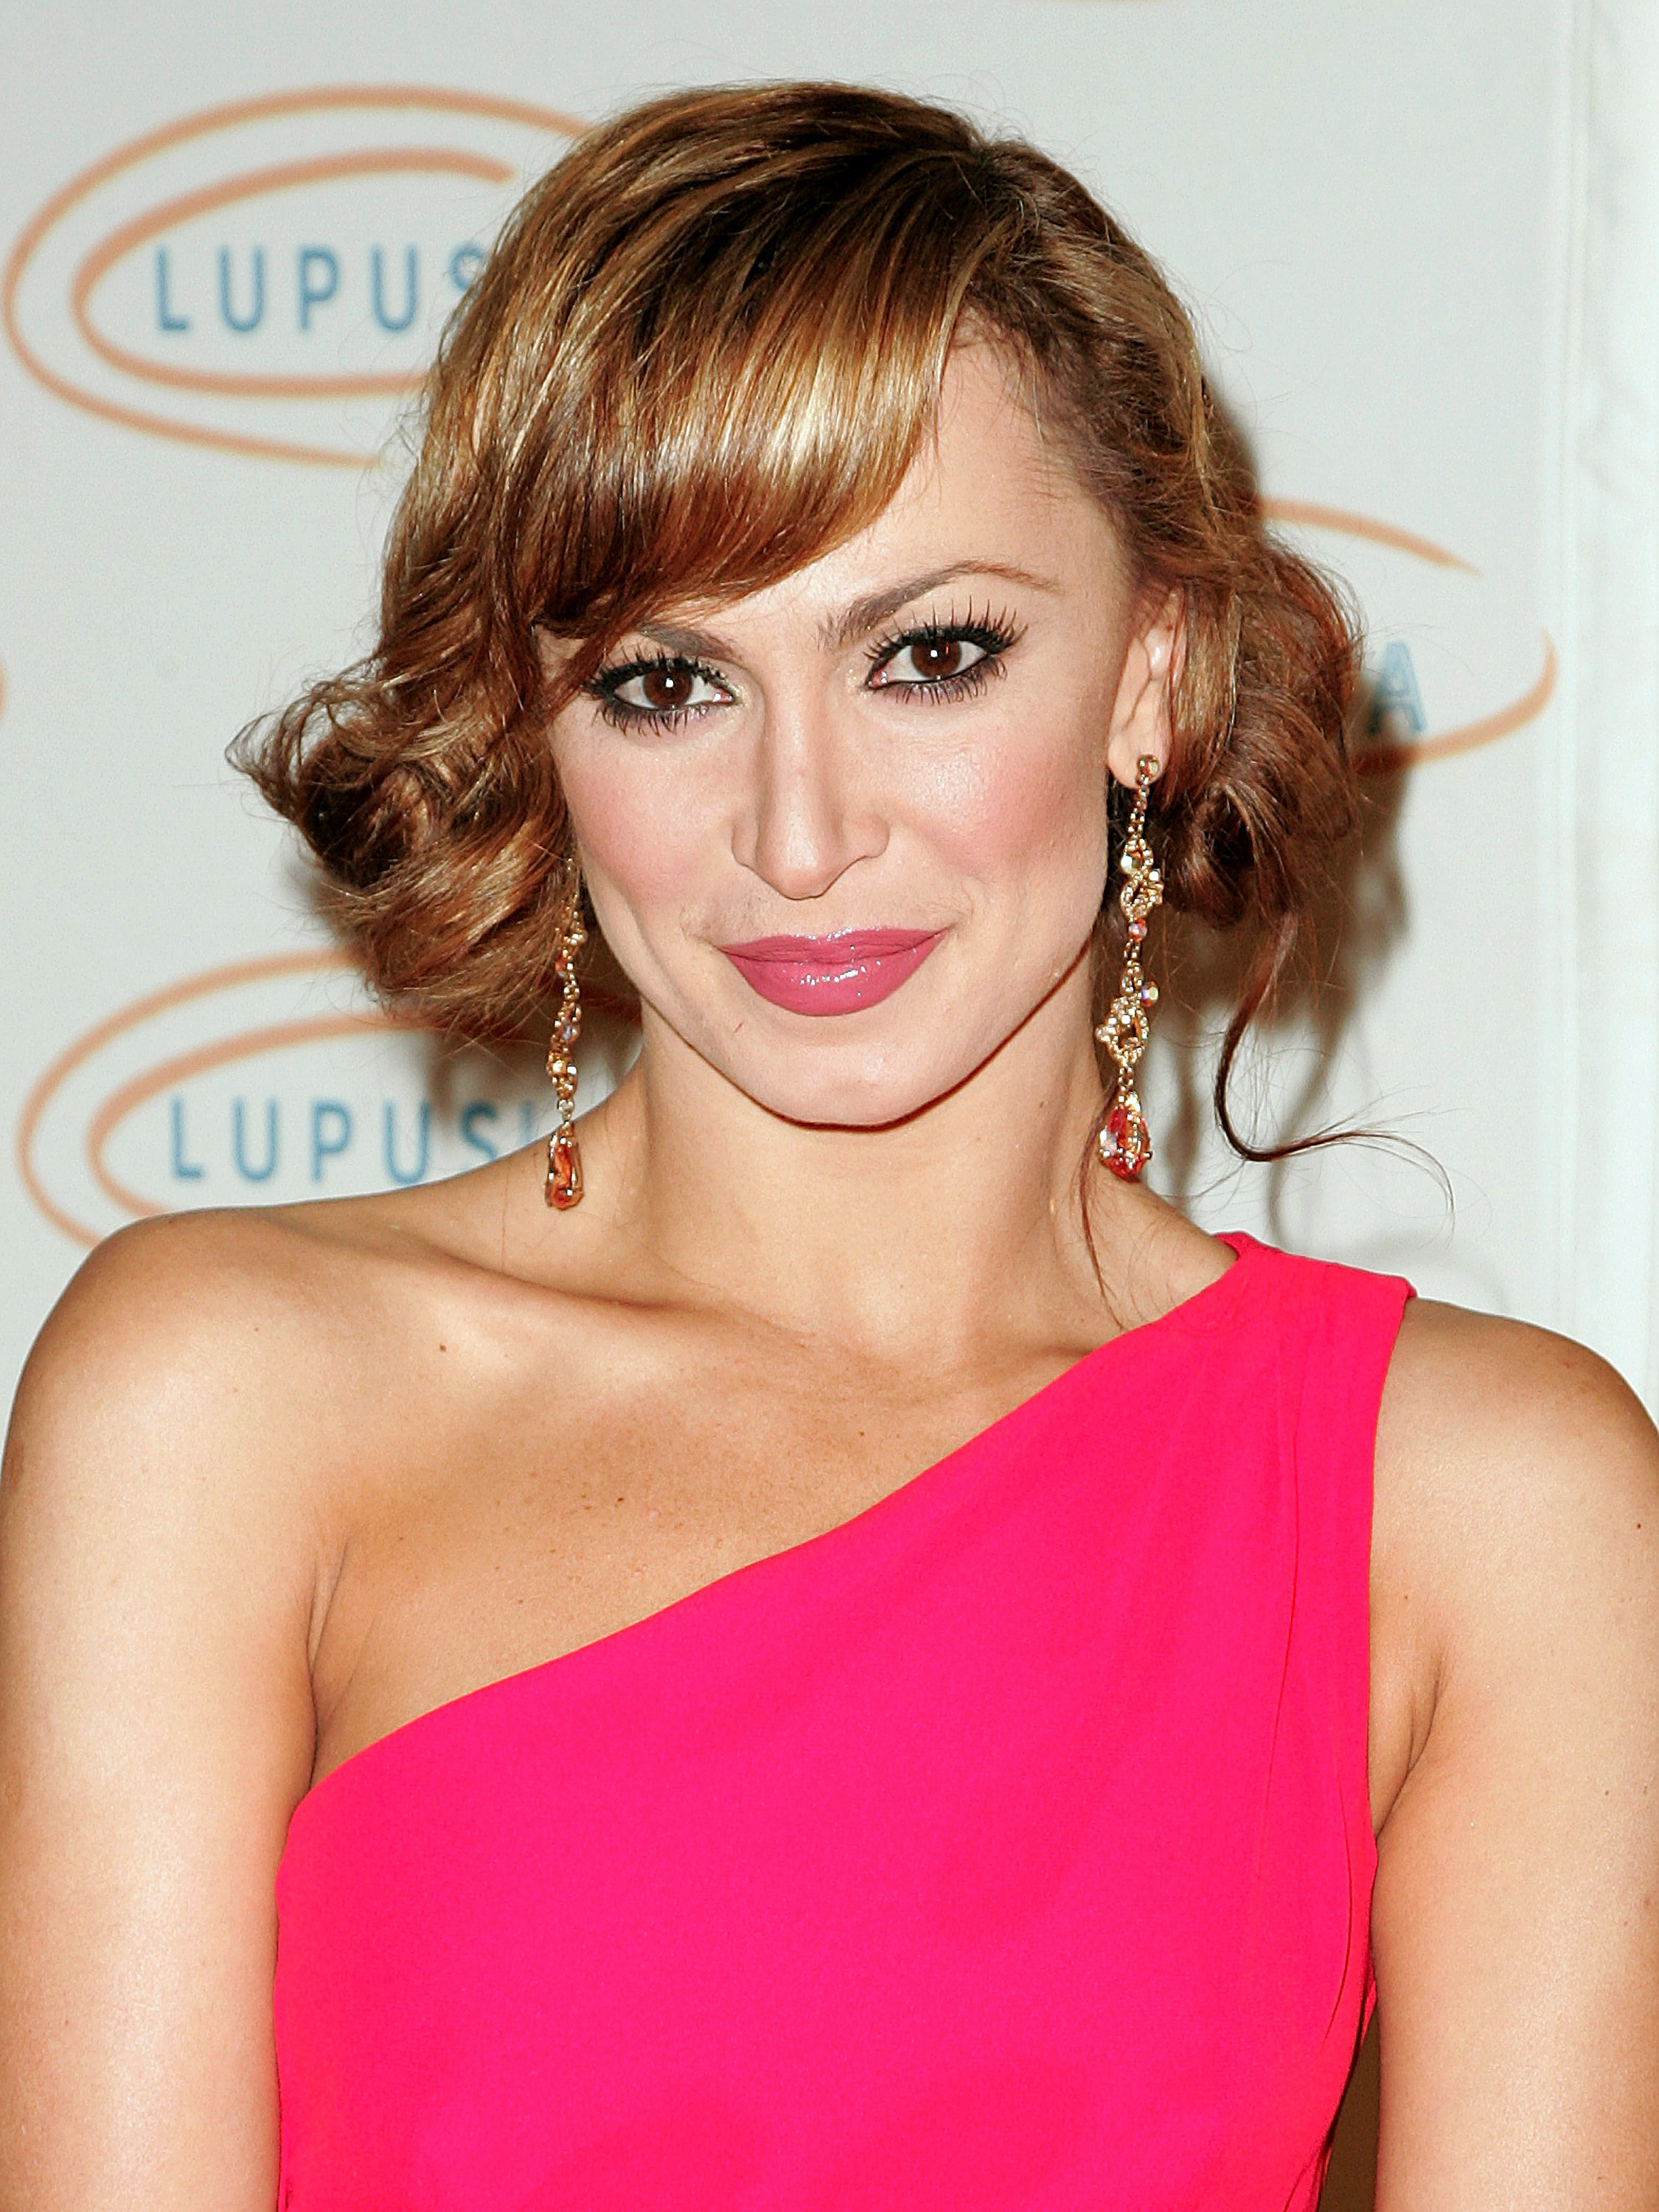 29723_Karina_Smirnoff_2008-11-07_-_Lupus_LA1s_Sixth_Annual_Hollywood_Bag_Ladies_Luncheon_in_Beverly_H_892_122_867lo.jpg